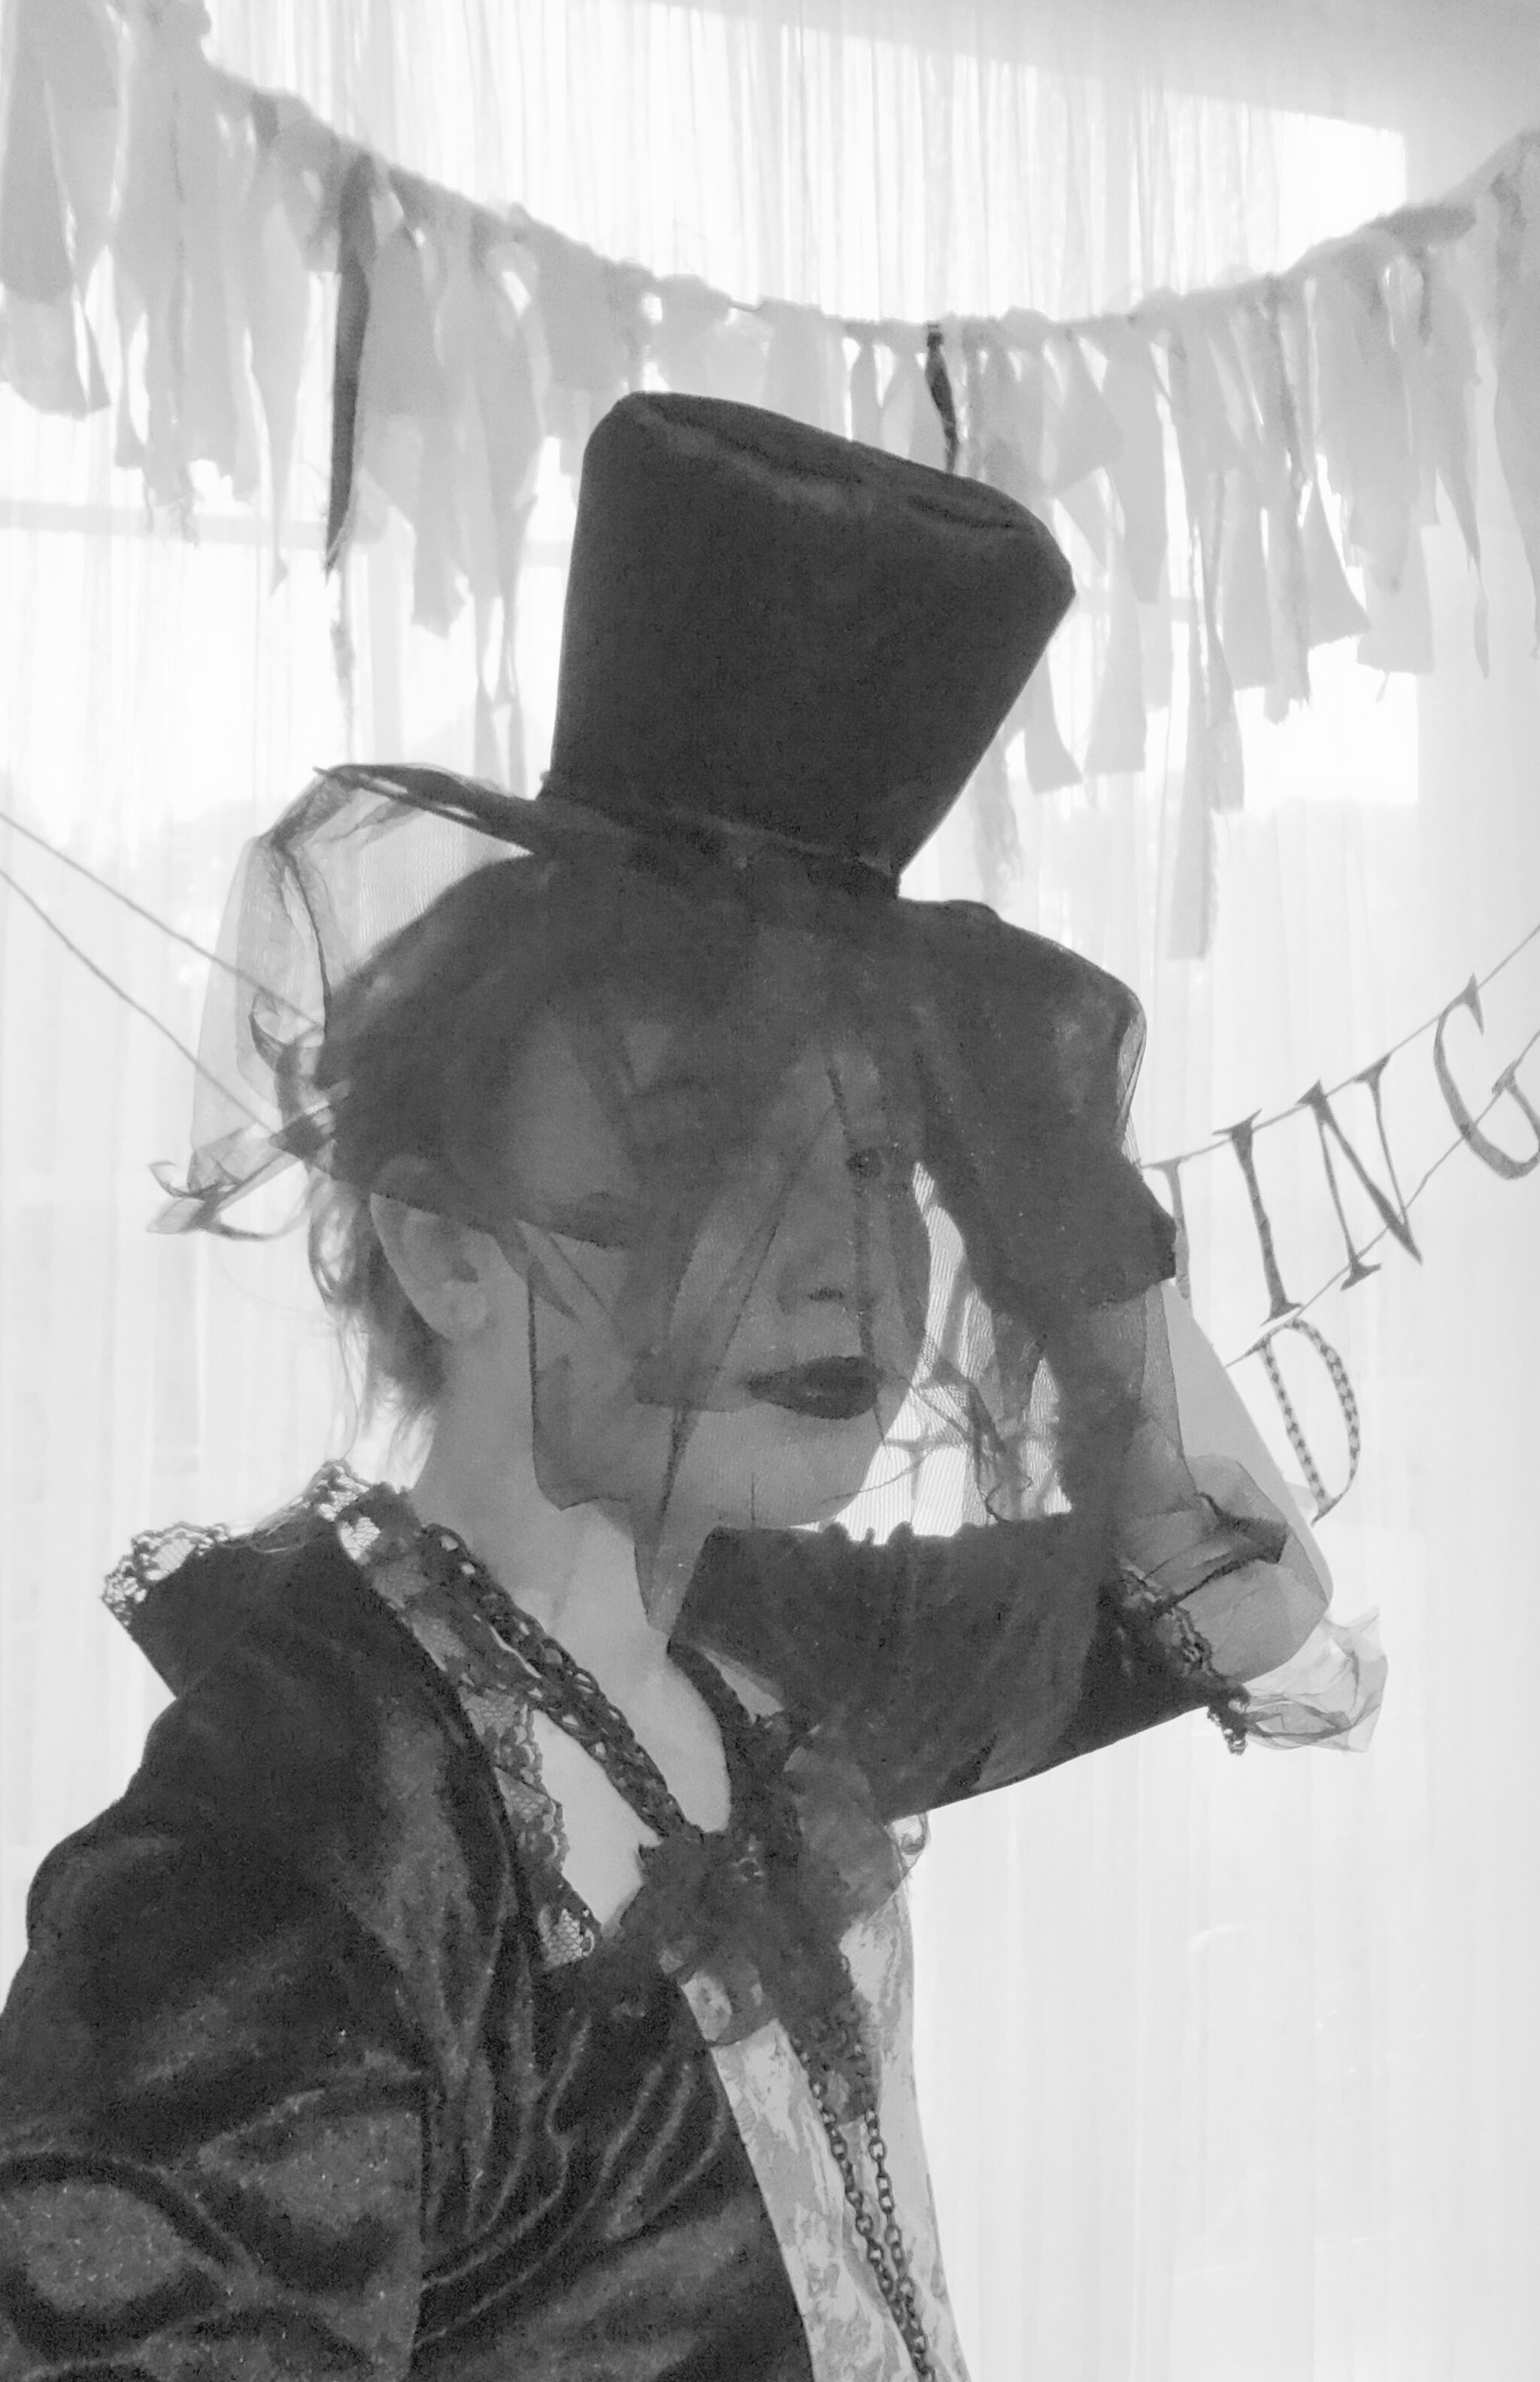 Victorian Lady Halloween Costume madeinaday.com